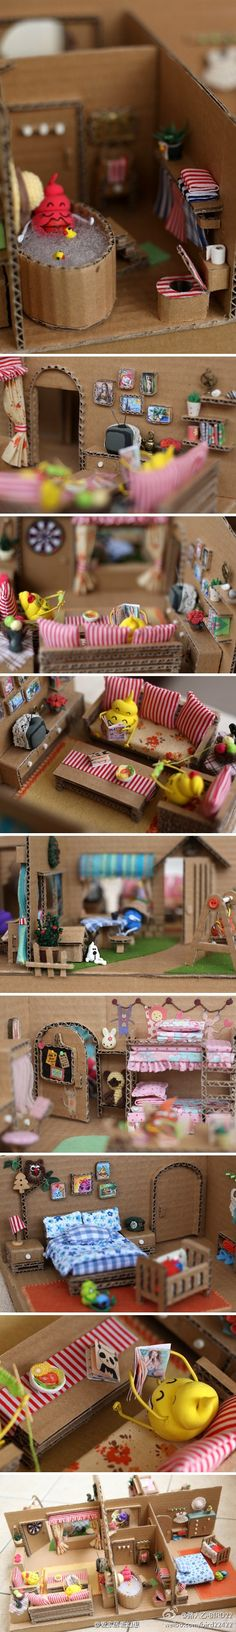 Little dream house ~ LOVE!!!